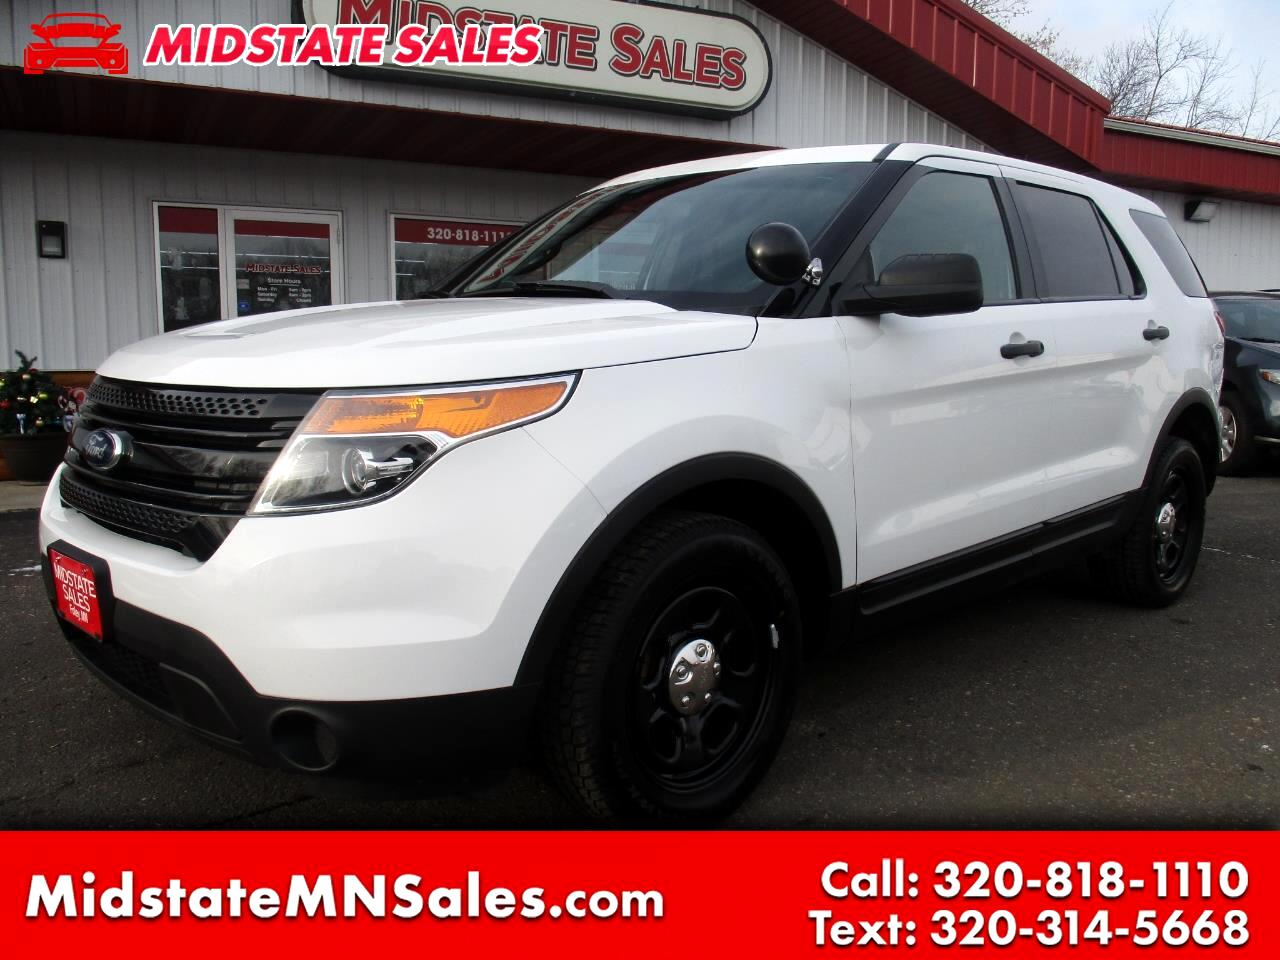 2014 Ford Utility Police Interceptor AWD 4dr